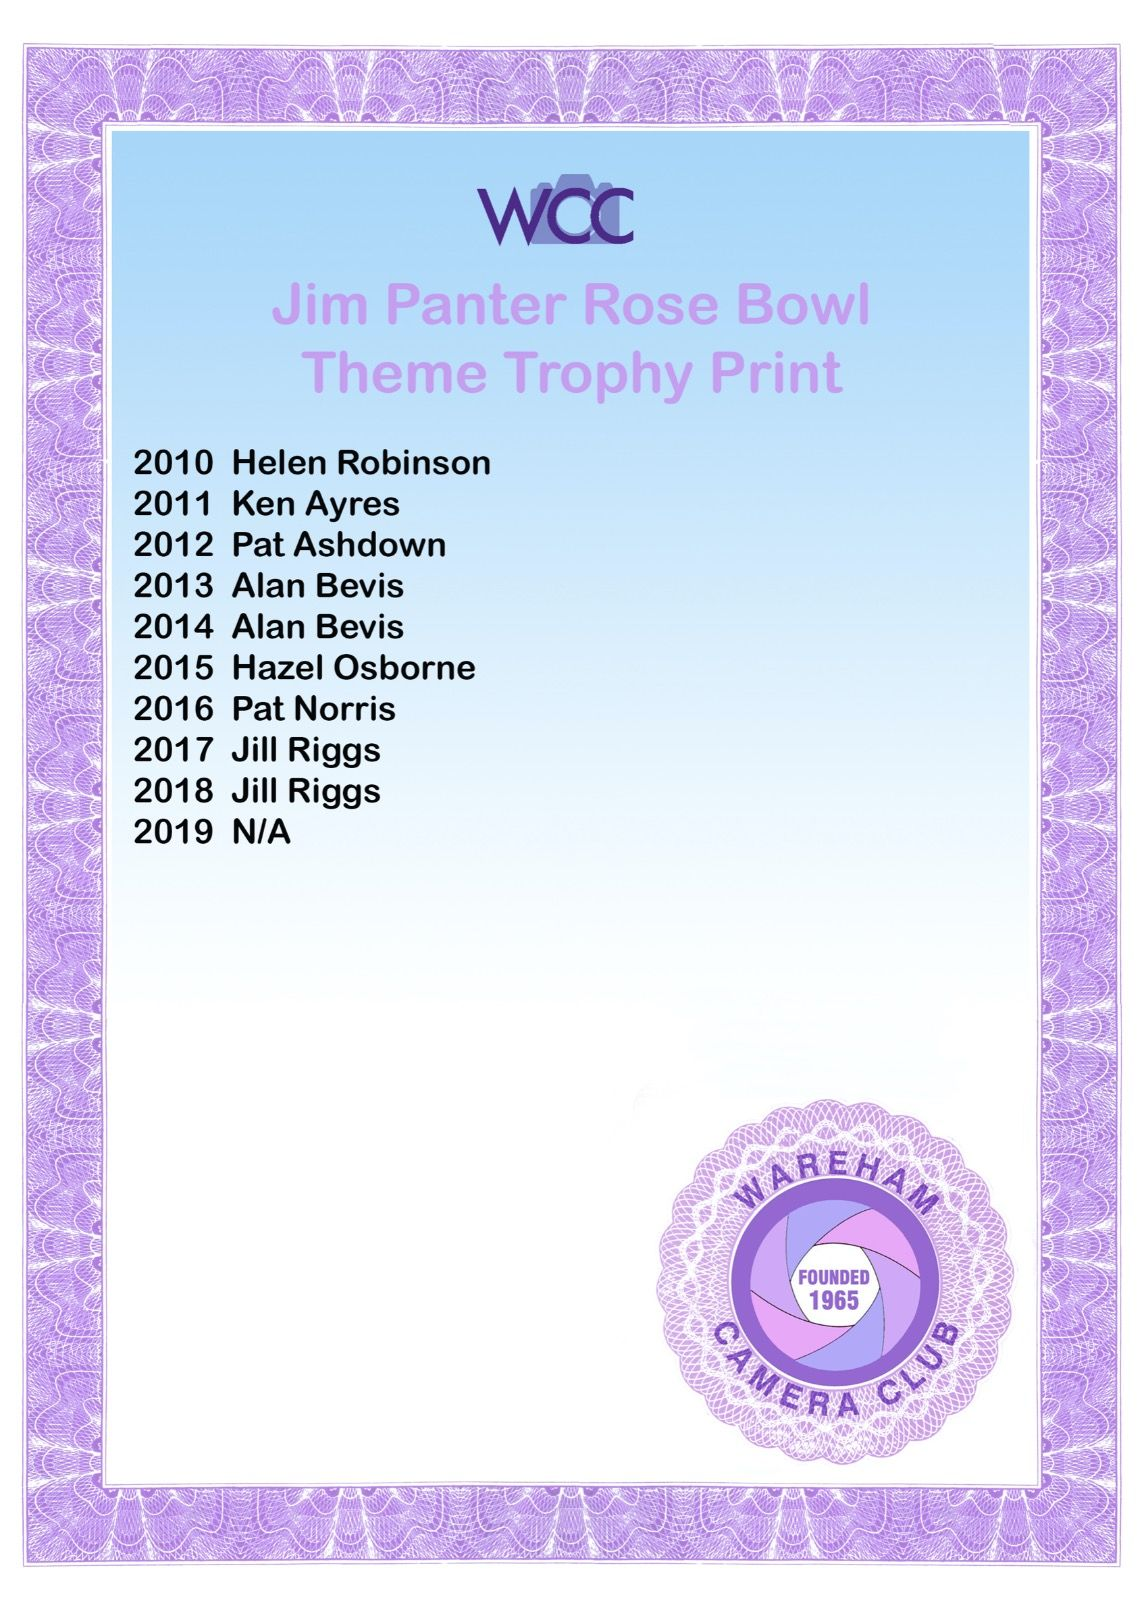 Jim Panter Rose Bowl Print